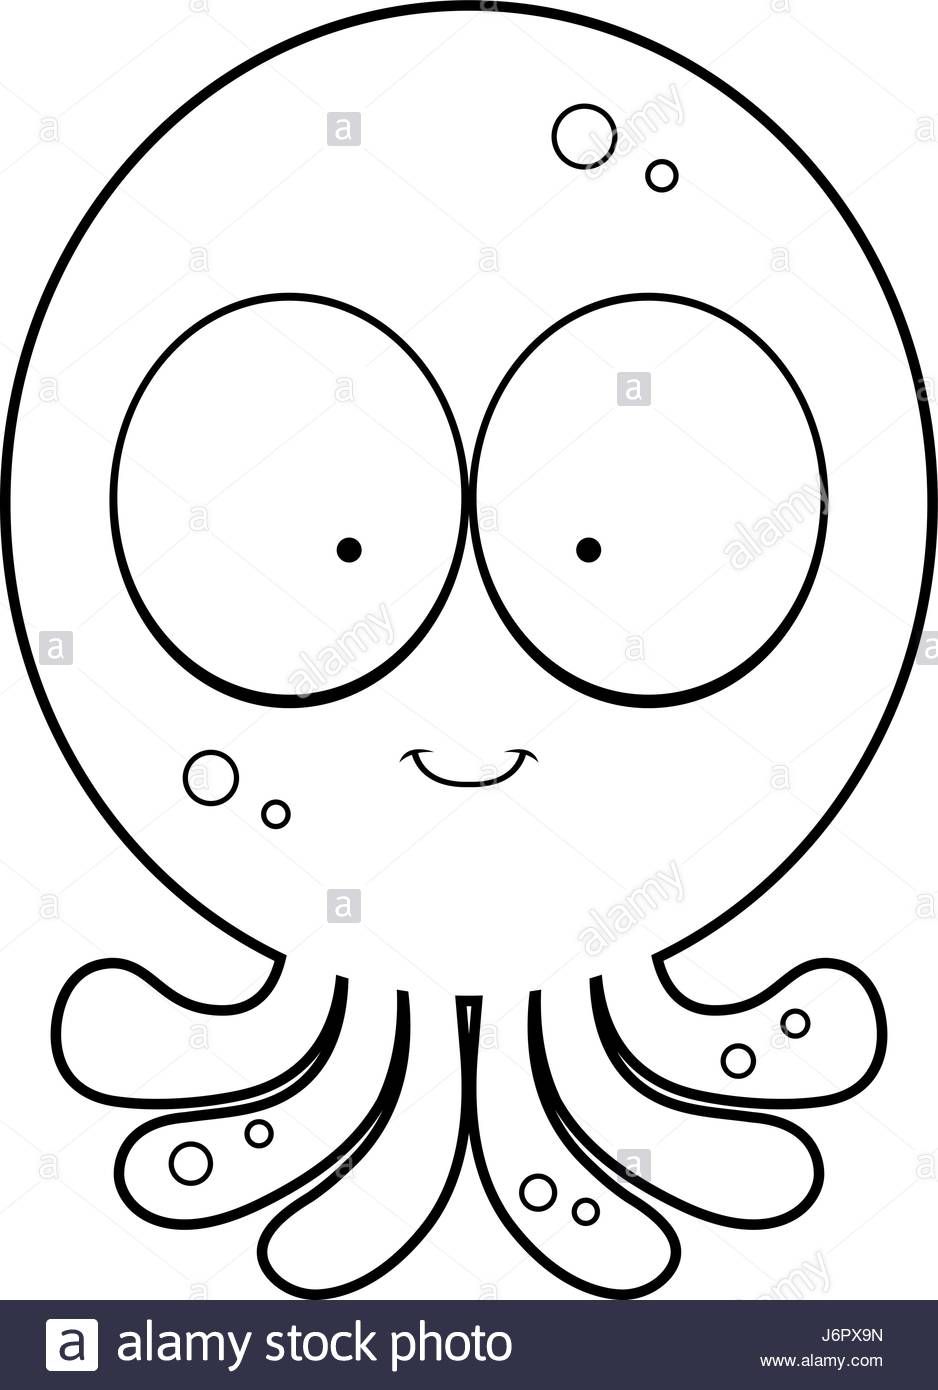 938x1390 Baby Octopus Black And White Stock Photos Amp Images